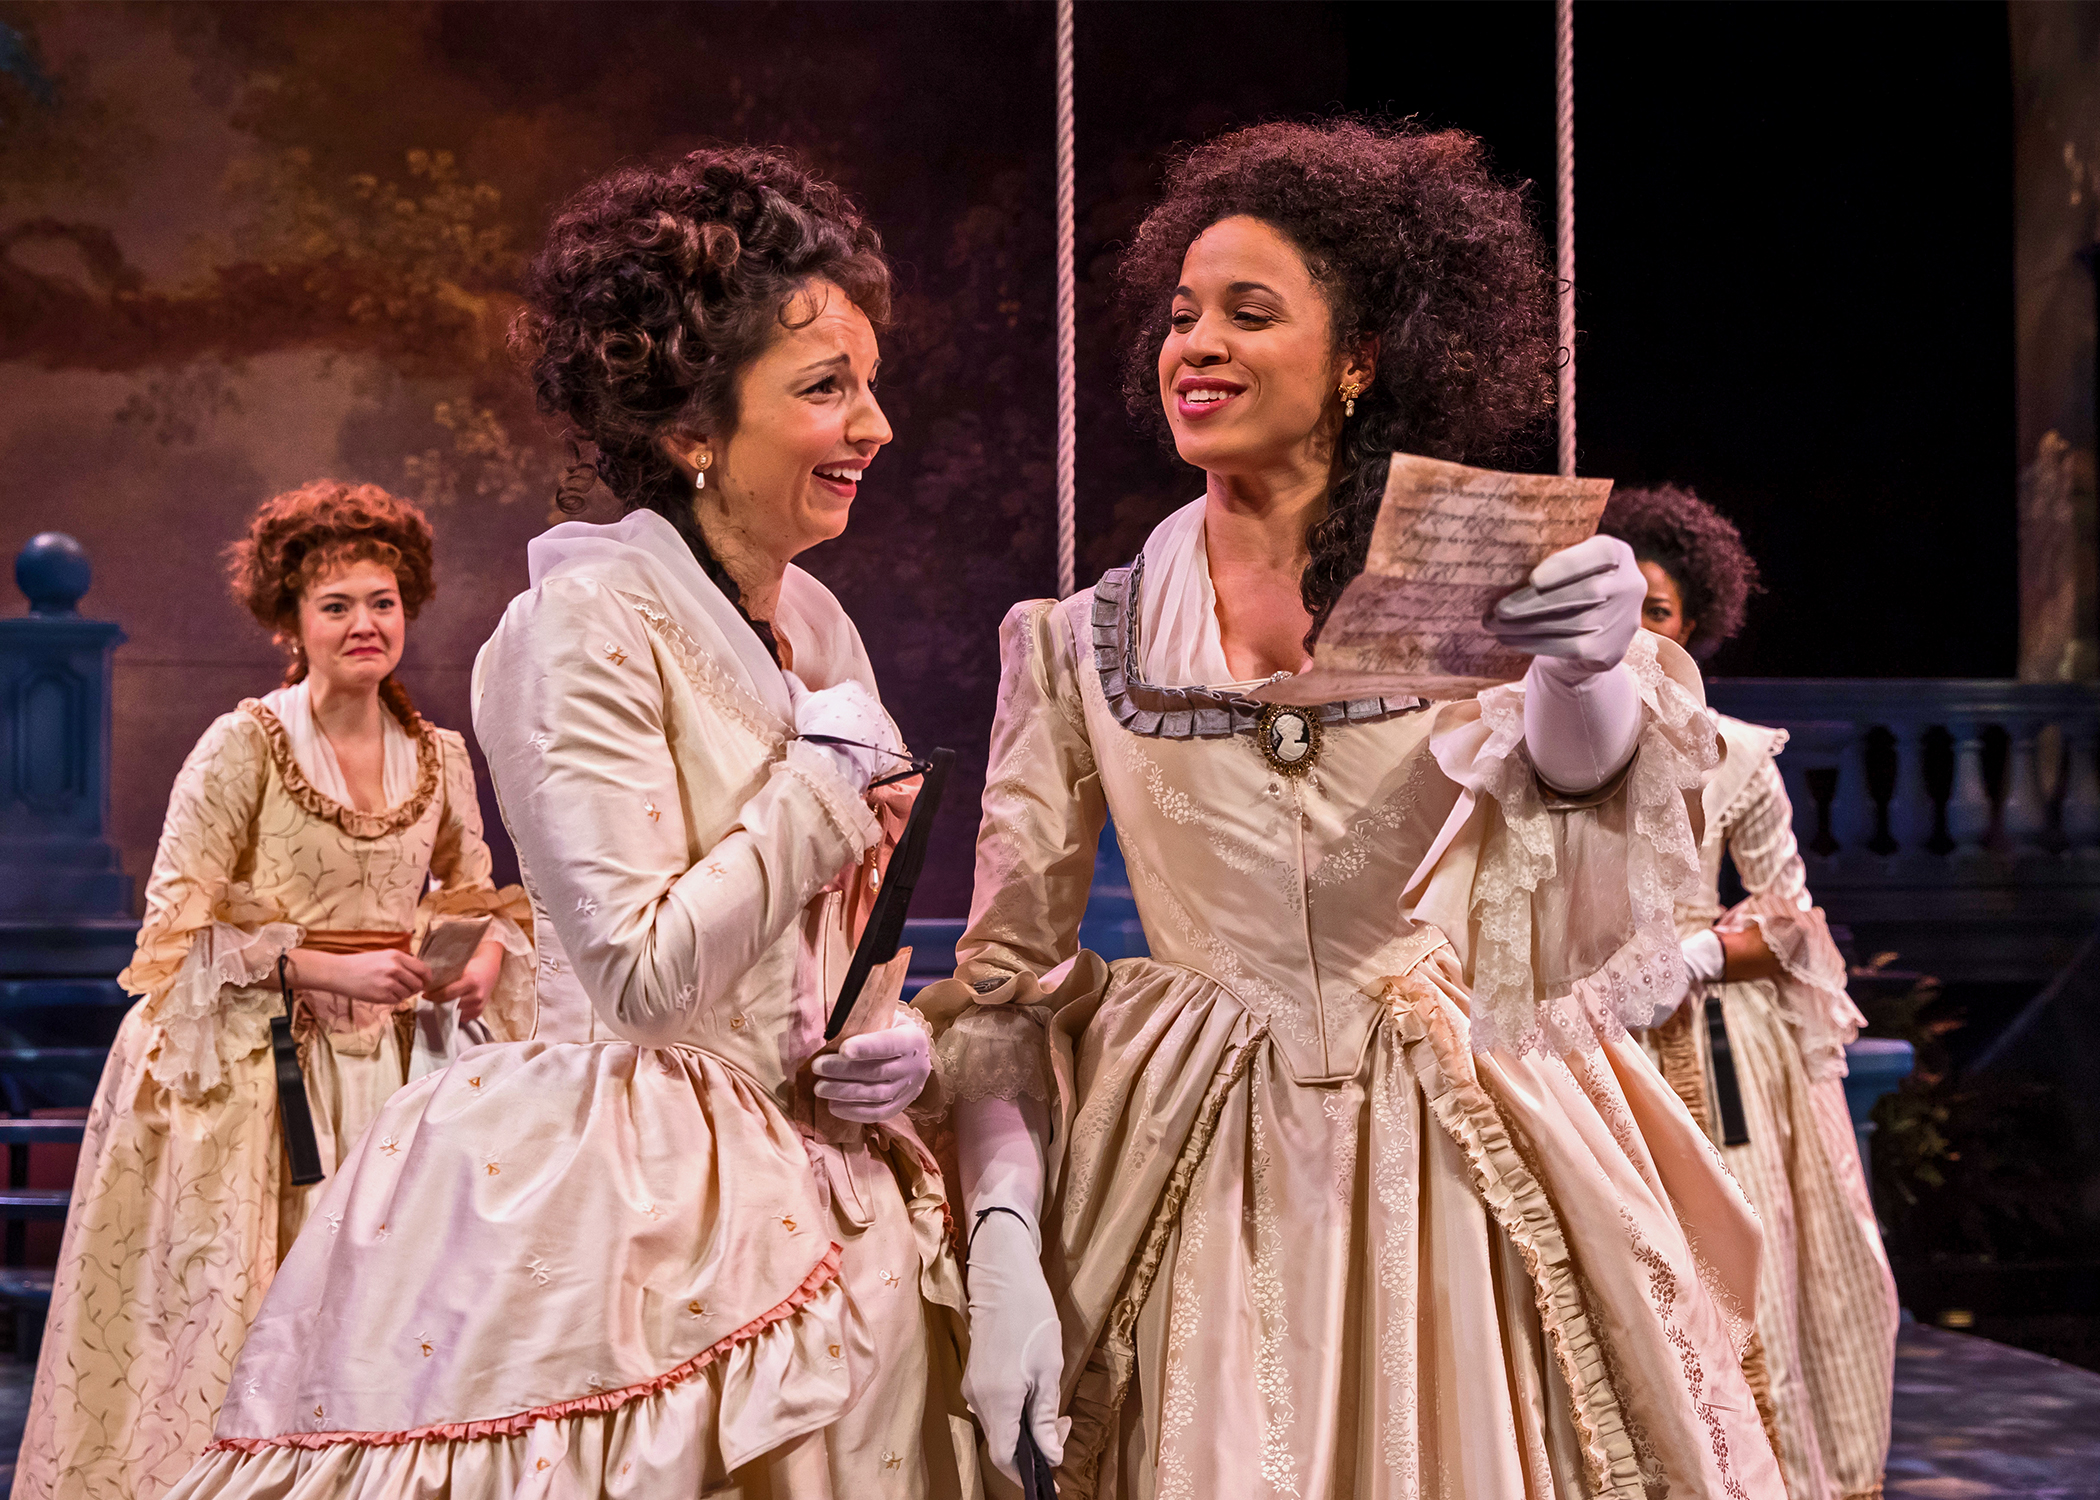 The Princess (Jennie Greenberry, at right) and Rosaline (Laura Rook) gleefully read through a love letter mistakenly delivered into the wrong hands, as Katherine (Taylor Blim) and Maria (Jennifer Latimore) look on in Chicago Shakespeare Theater's production of Love's Labor's Lost, directed by Marti Maraden. Photo by Liz Lauren